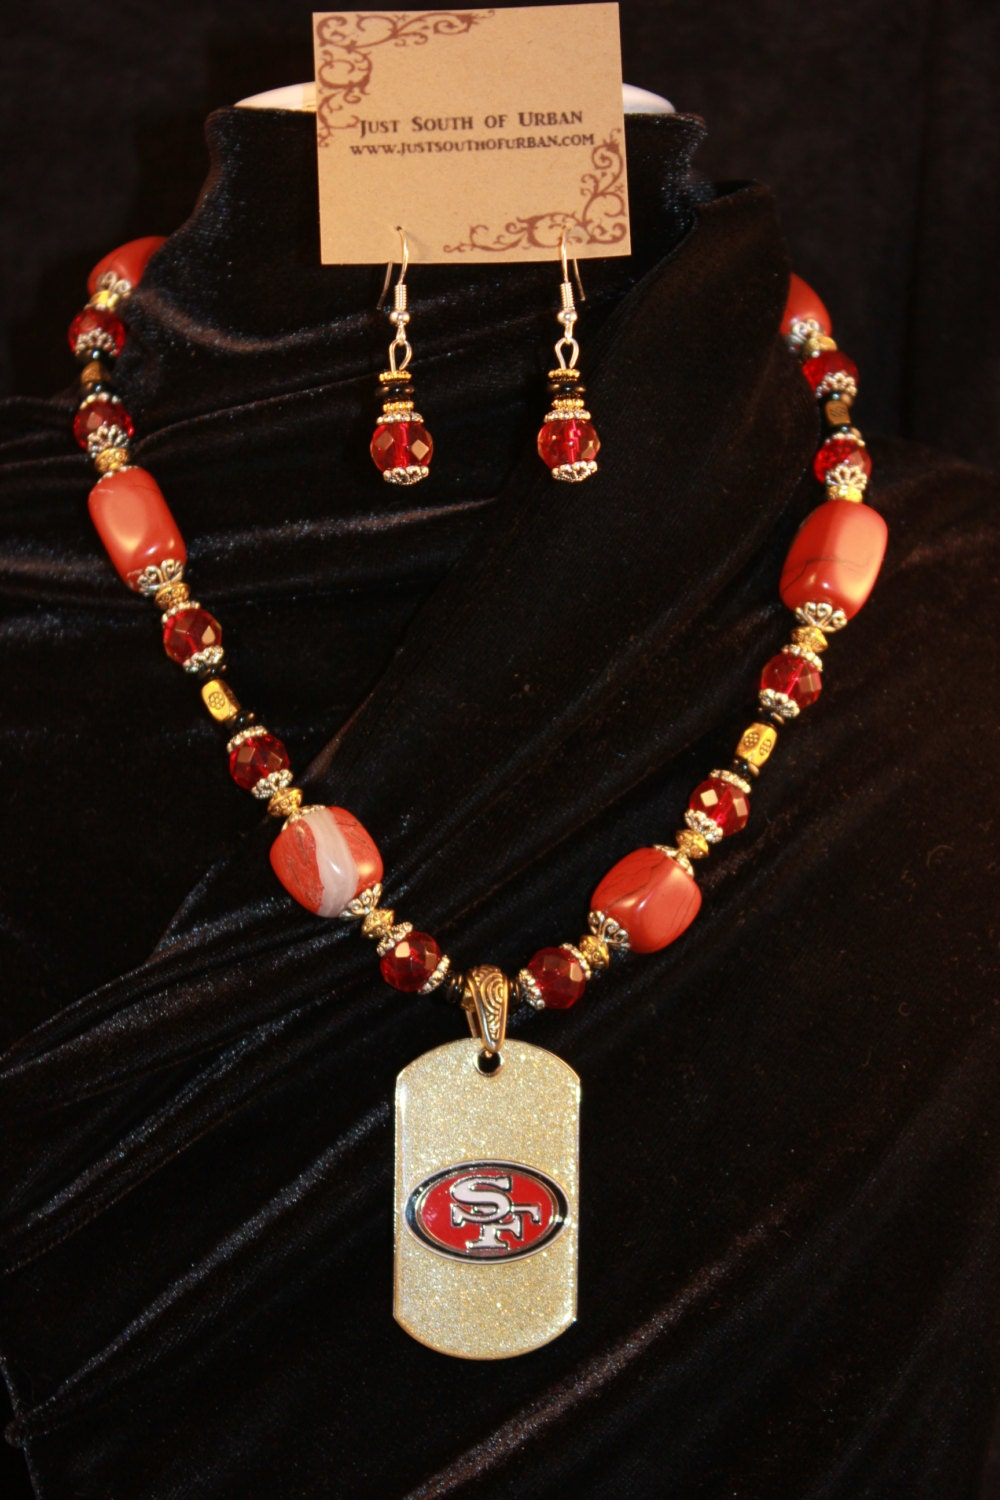 san francisco 49ers necklace and earring set by